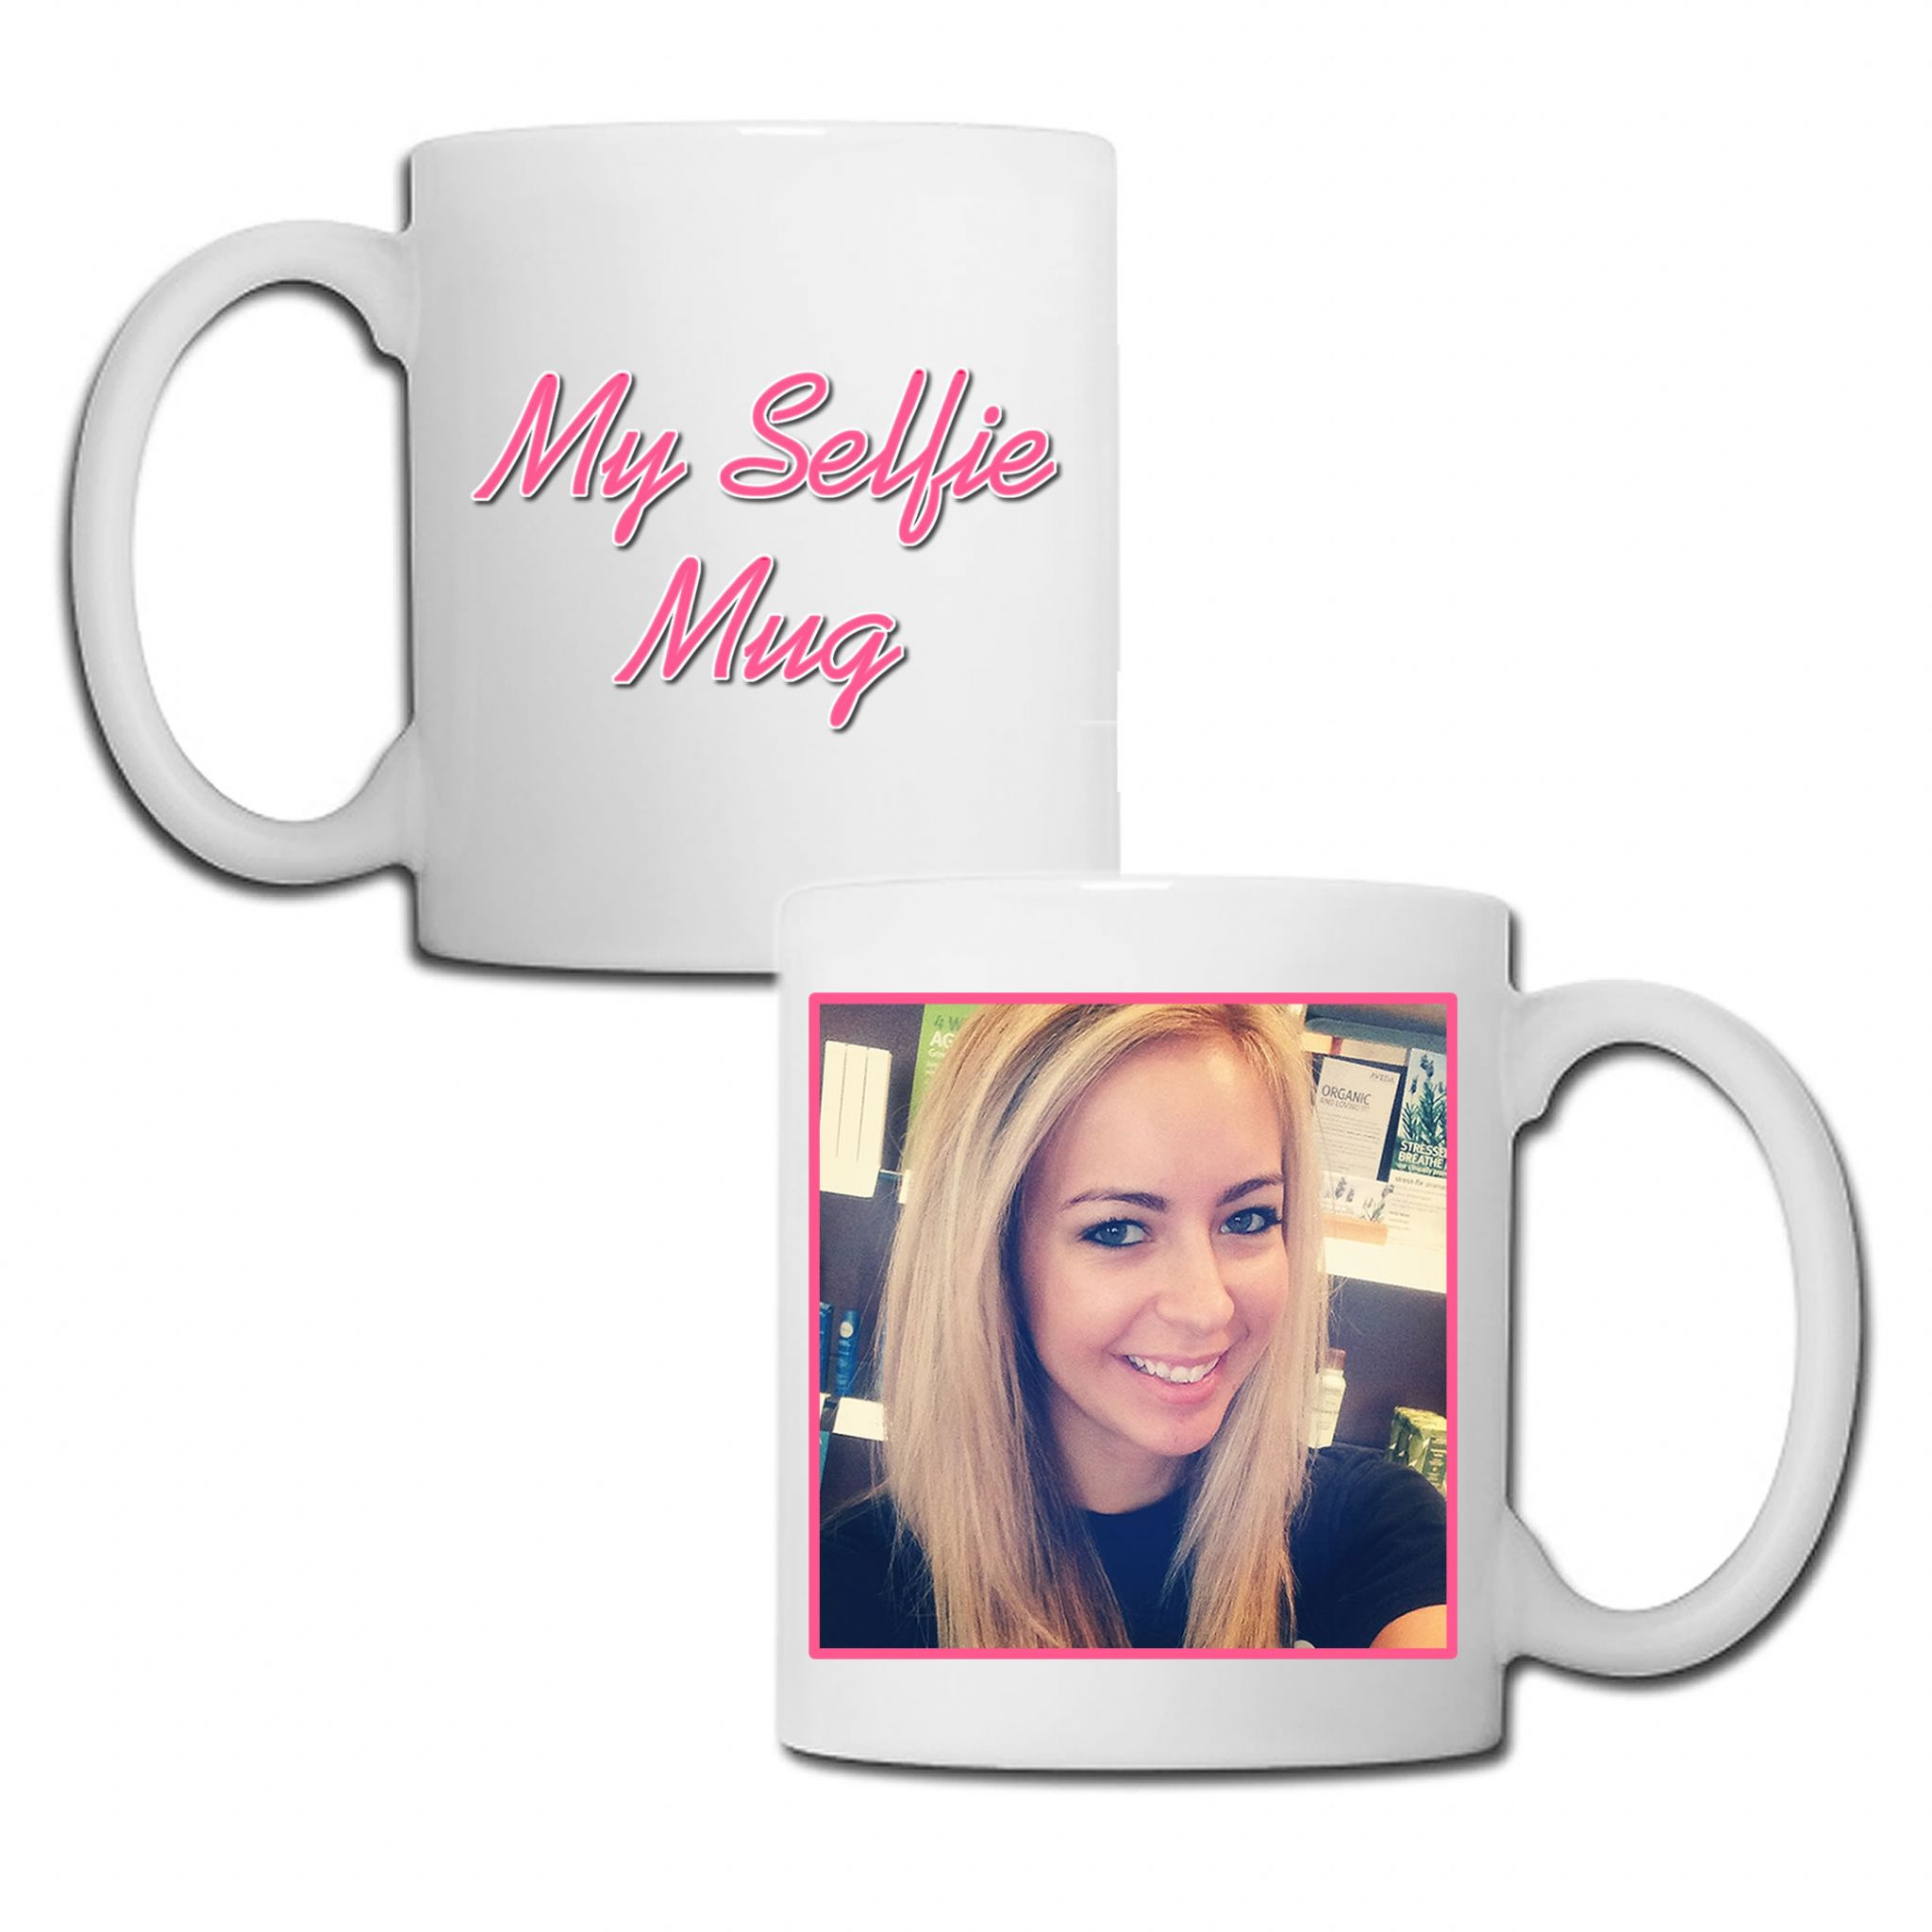 Little Gifts With Love - Personalised Boys My Selfie Photo Mug + Free Standard Delivery